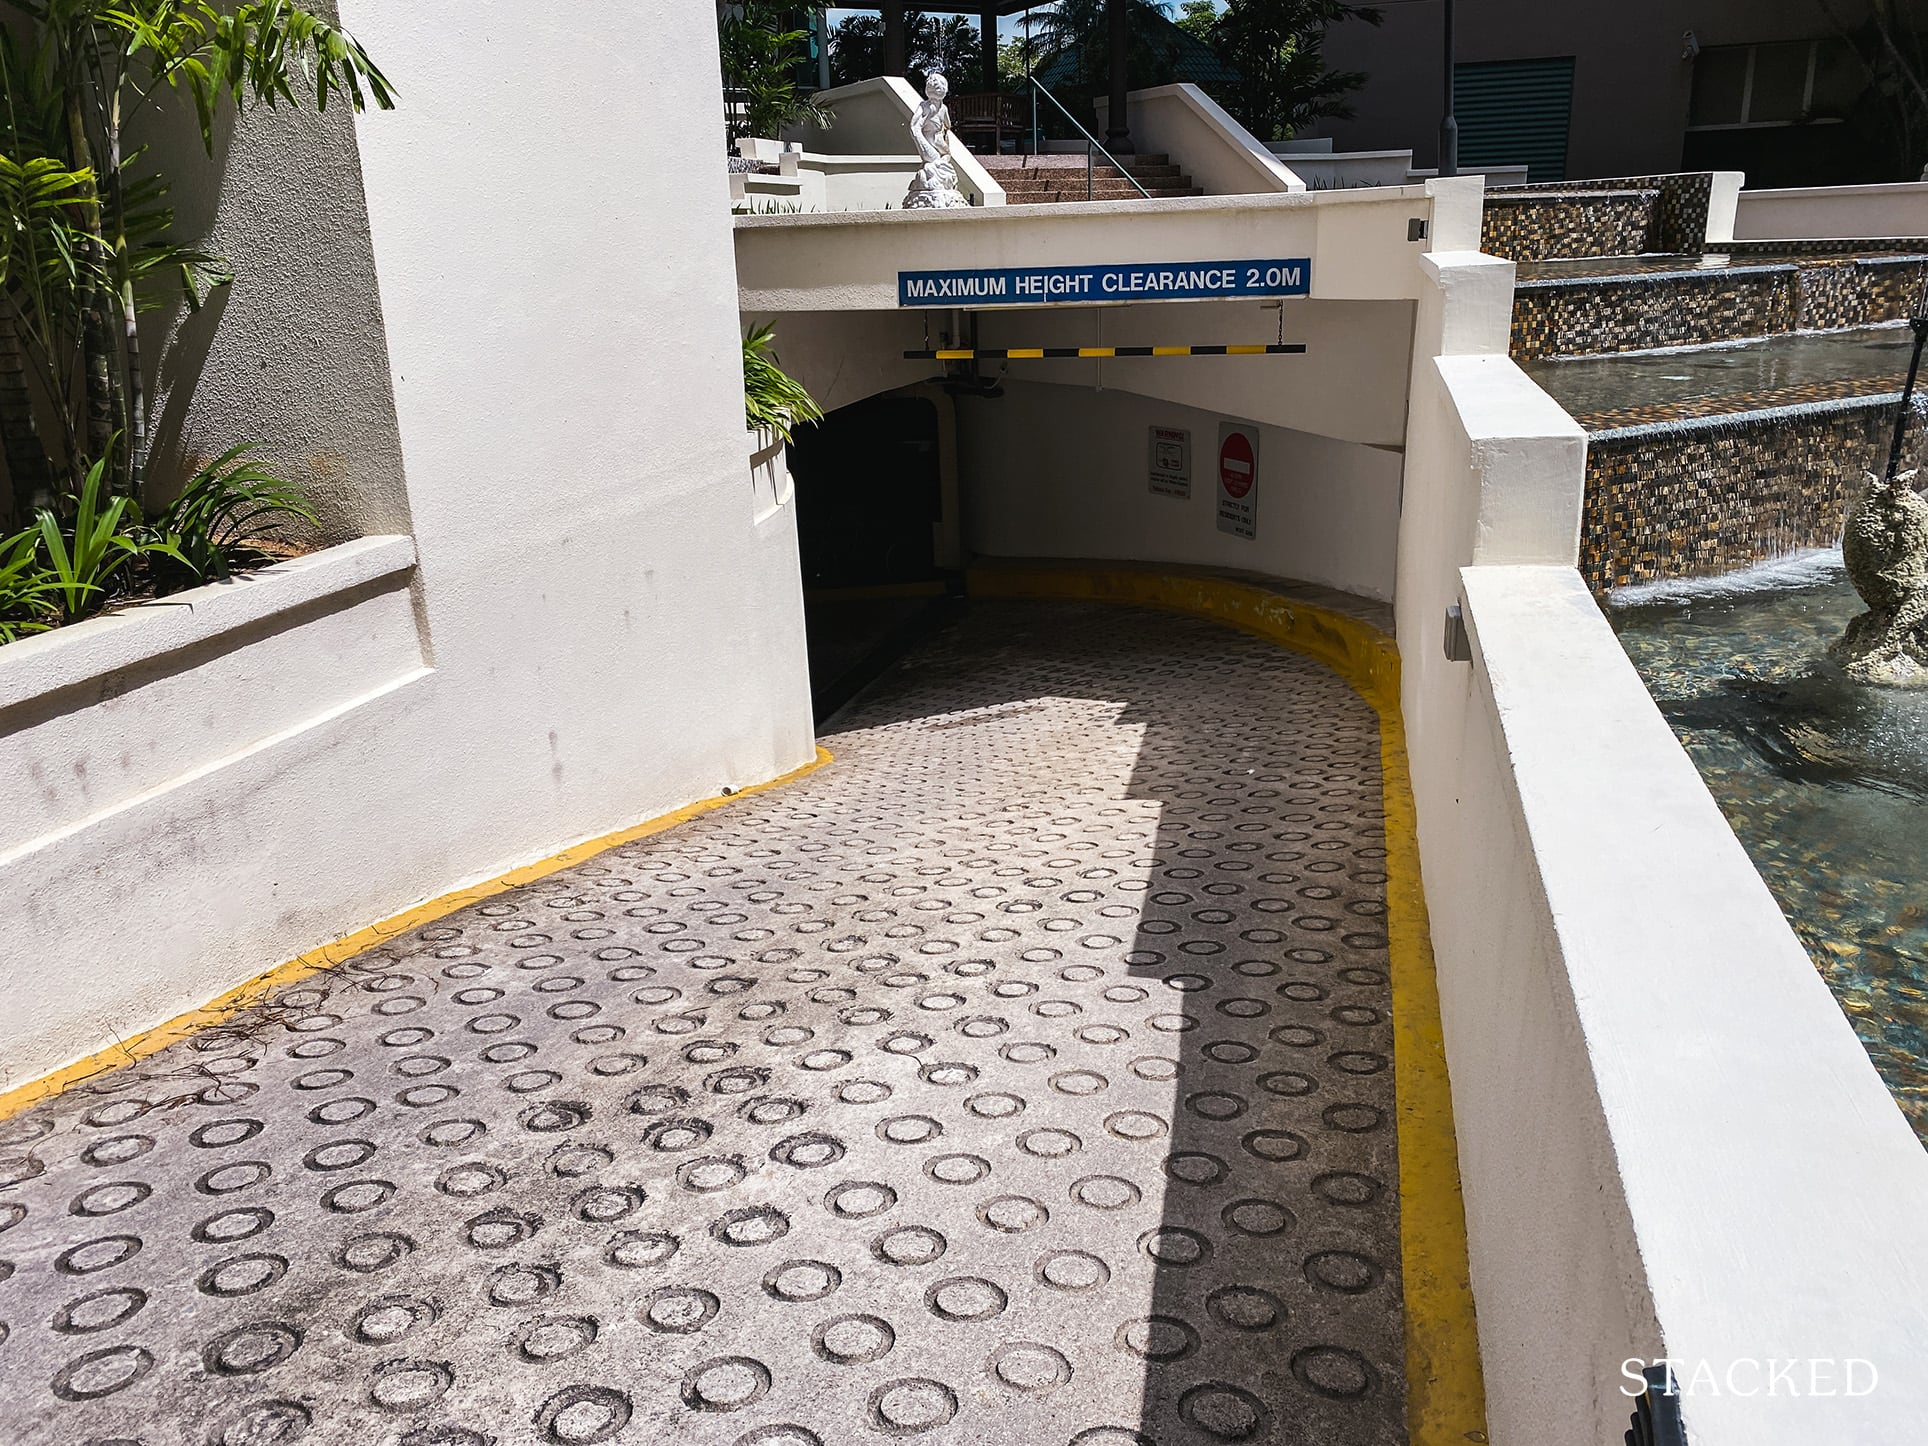 Tanglin regency carpark entrance